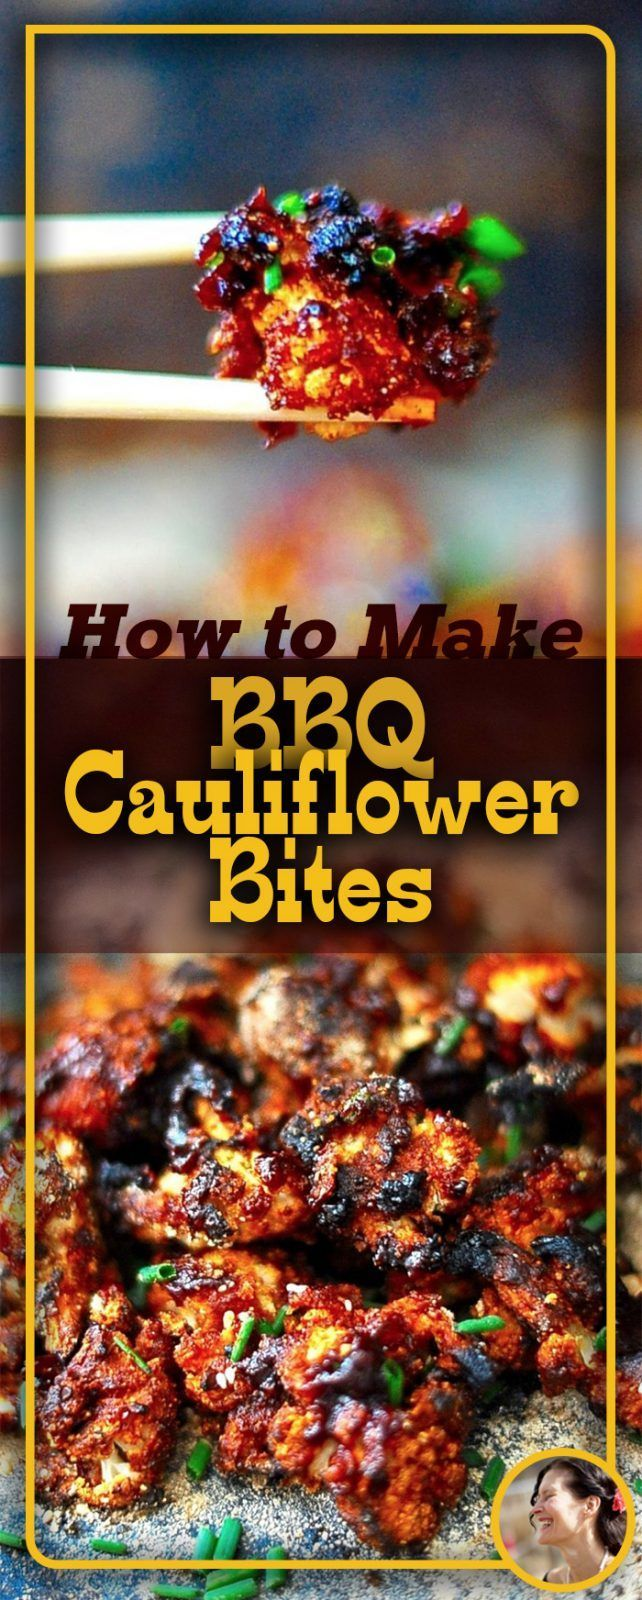 Feeling low? Trying to resist that bag of bbq potato chips on the shelf? Reach for a head of cauliflower instead. Toss it in my easy peasy punched up store bought Bbq sauce, and bake until you have little golden nuggets of guilt free cauliflower crack. Baked Bbq Cauliflower Bites will help get you through that bad break up, just like a bag of potato chips will; the difference being that you won't have a 'food hangover' in the morning. Cook up a batch (or two, I won't tell) of ...